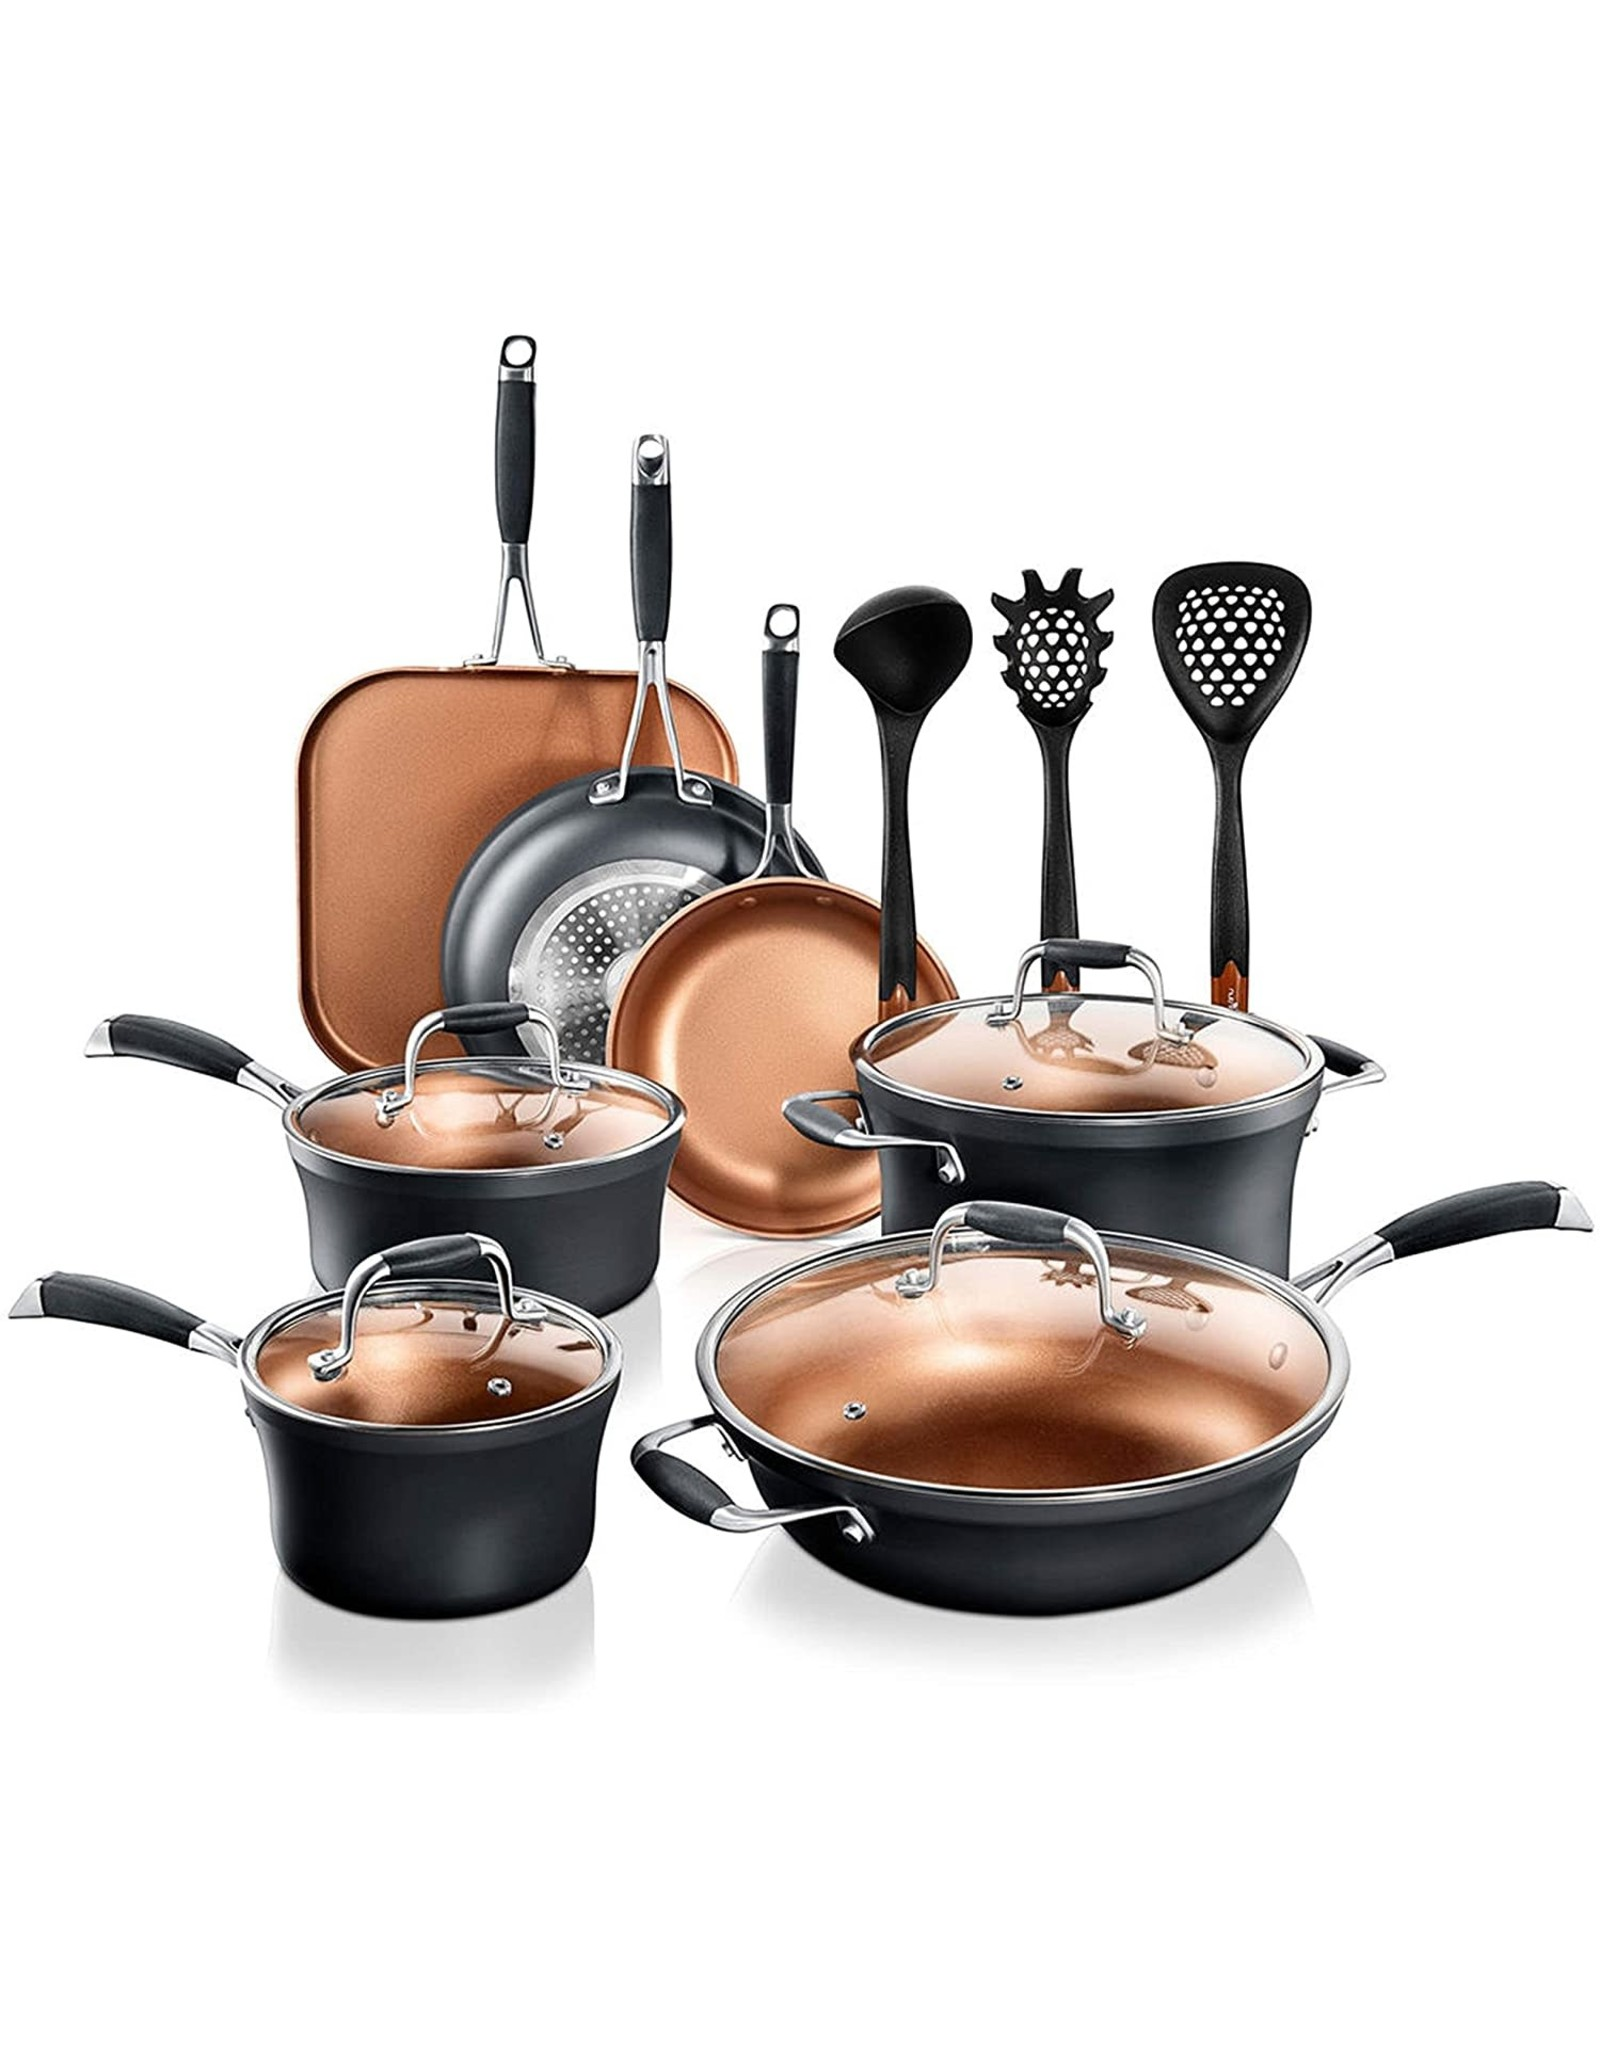 NutriChef NutriChef Stackable Pots and Pans Set – 14-pcs Luxurious Stackable Cookware Set – Sauce Pans Nonstick Set with Lids– Healthy Food-Grade Copper Non-Stick Ceramic Coating - PTFE, PFOA, and PFOS Free